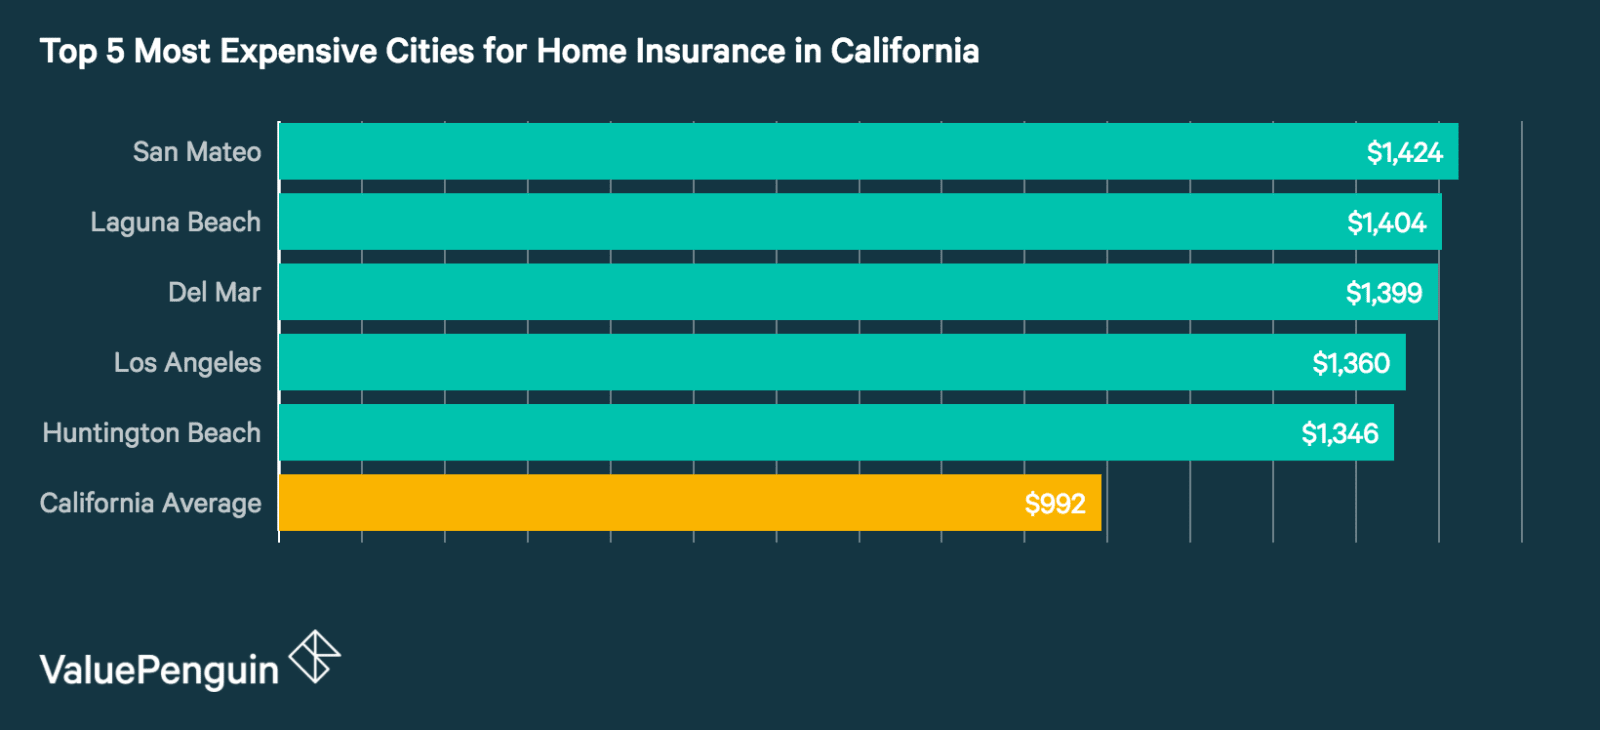 Top 5 Most Expensive Cities in California for Homeowners Insurance